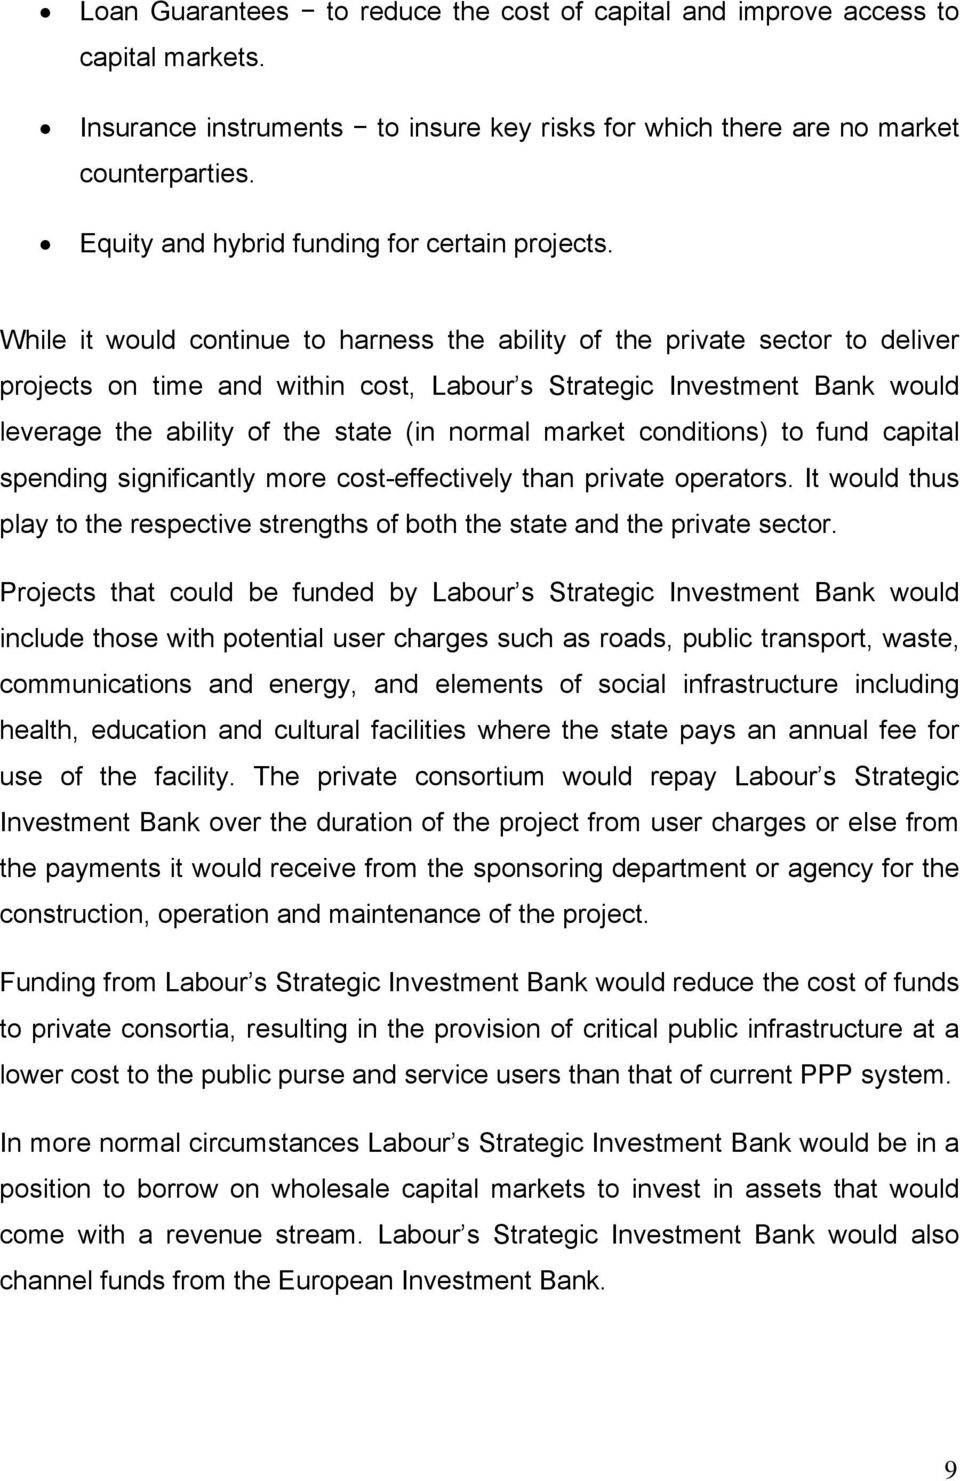 While it would continue to harness the ability of the private sector to deliver projects on time and within cost, Labour s Strategic Investment Bank would leverage the ability of the state (in normal